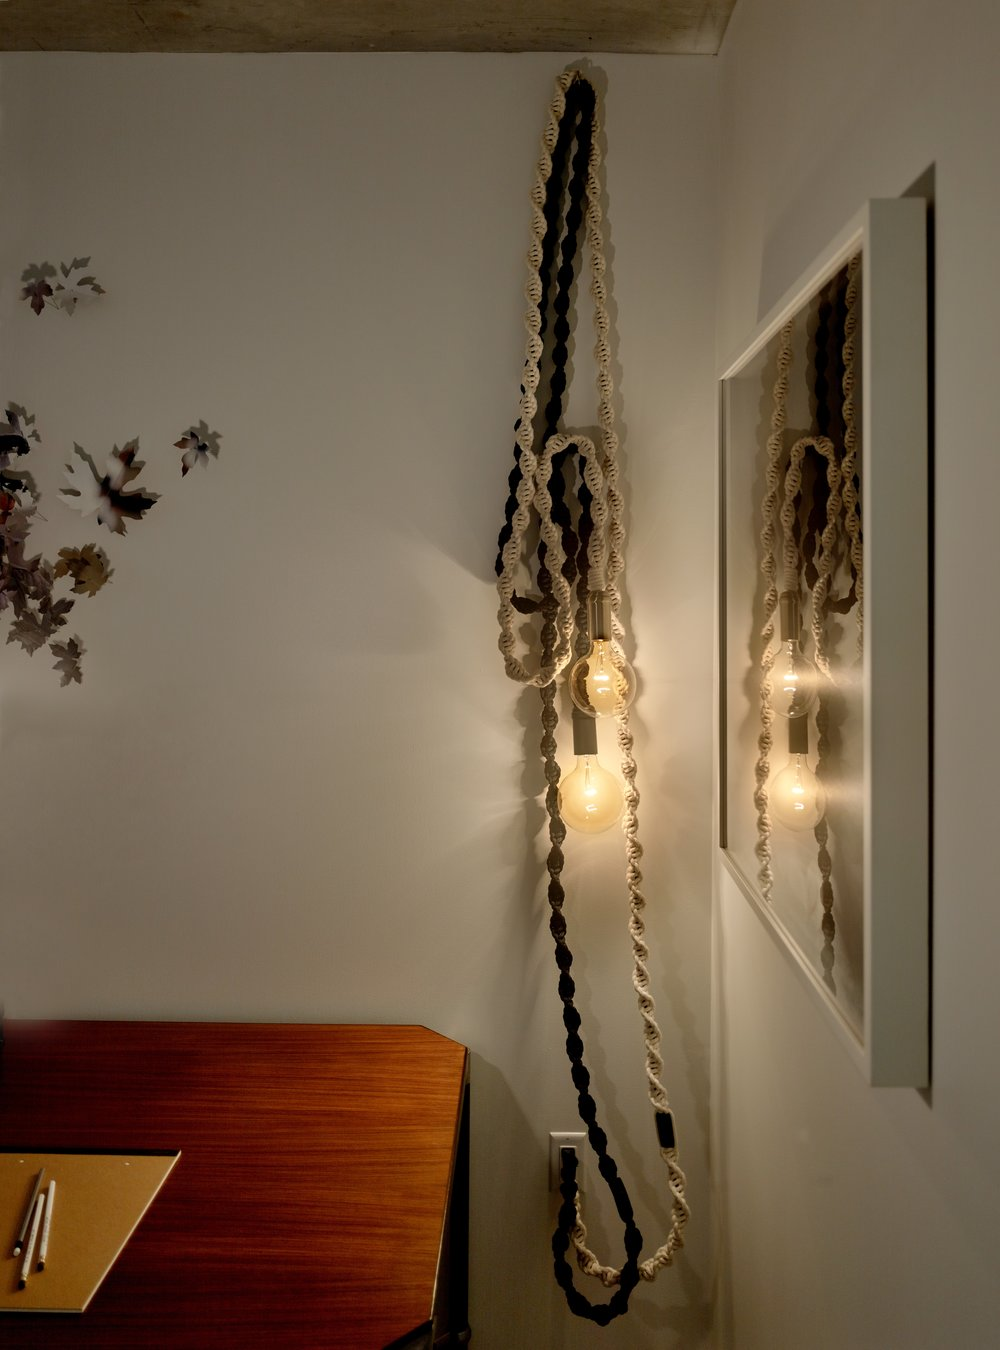 Helix Lights, The Rowan, San Francisco, by Windy Chien http://windychien.com